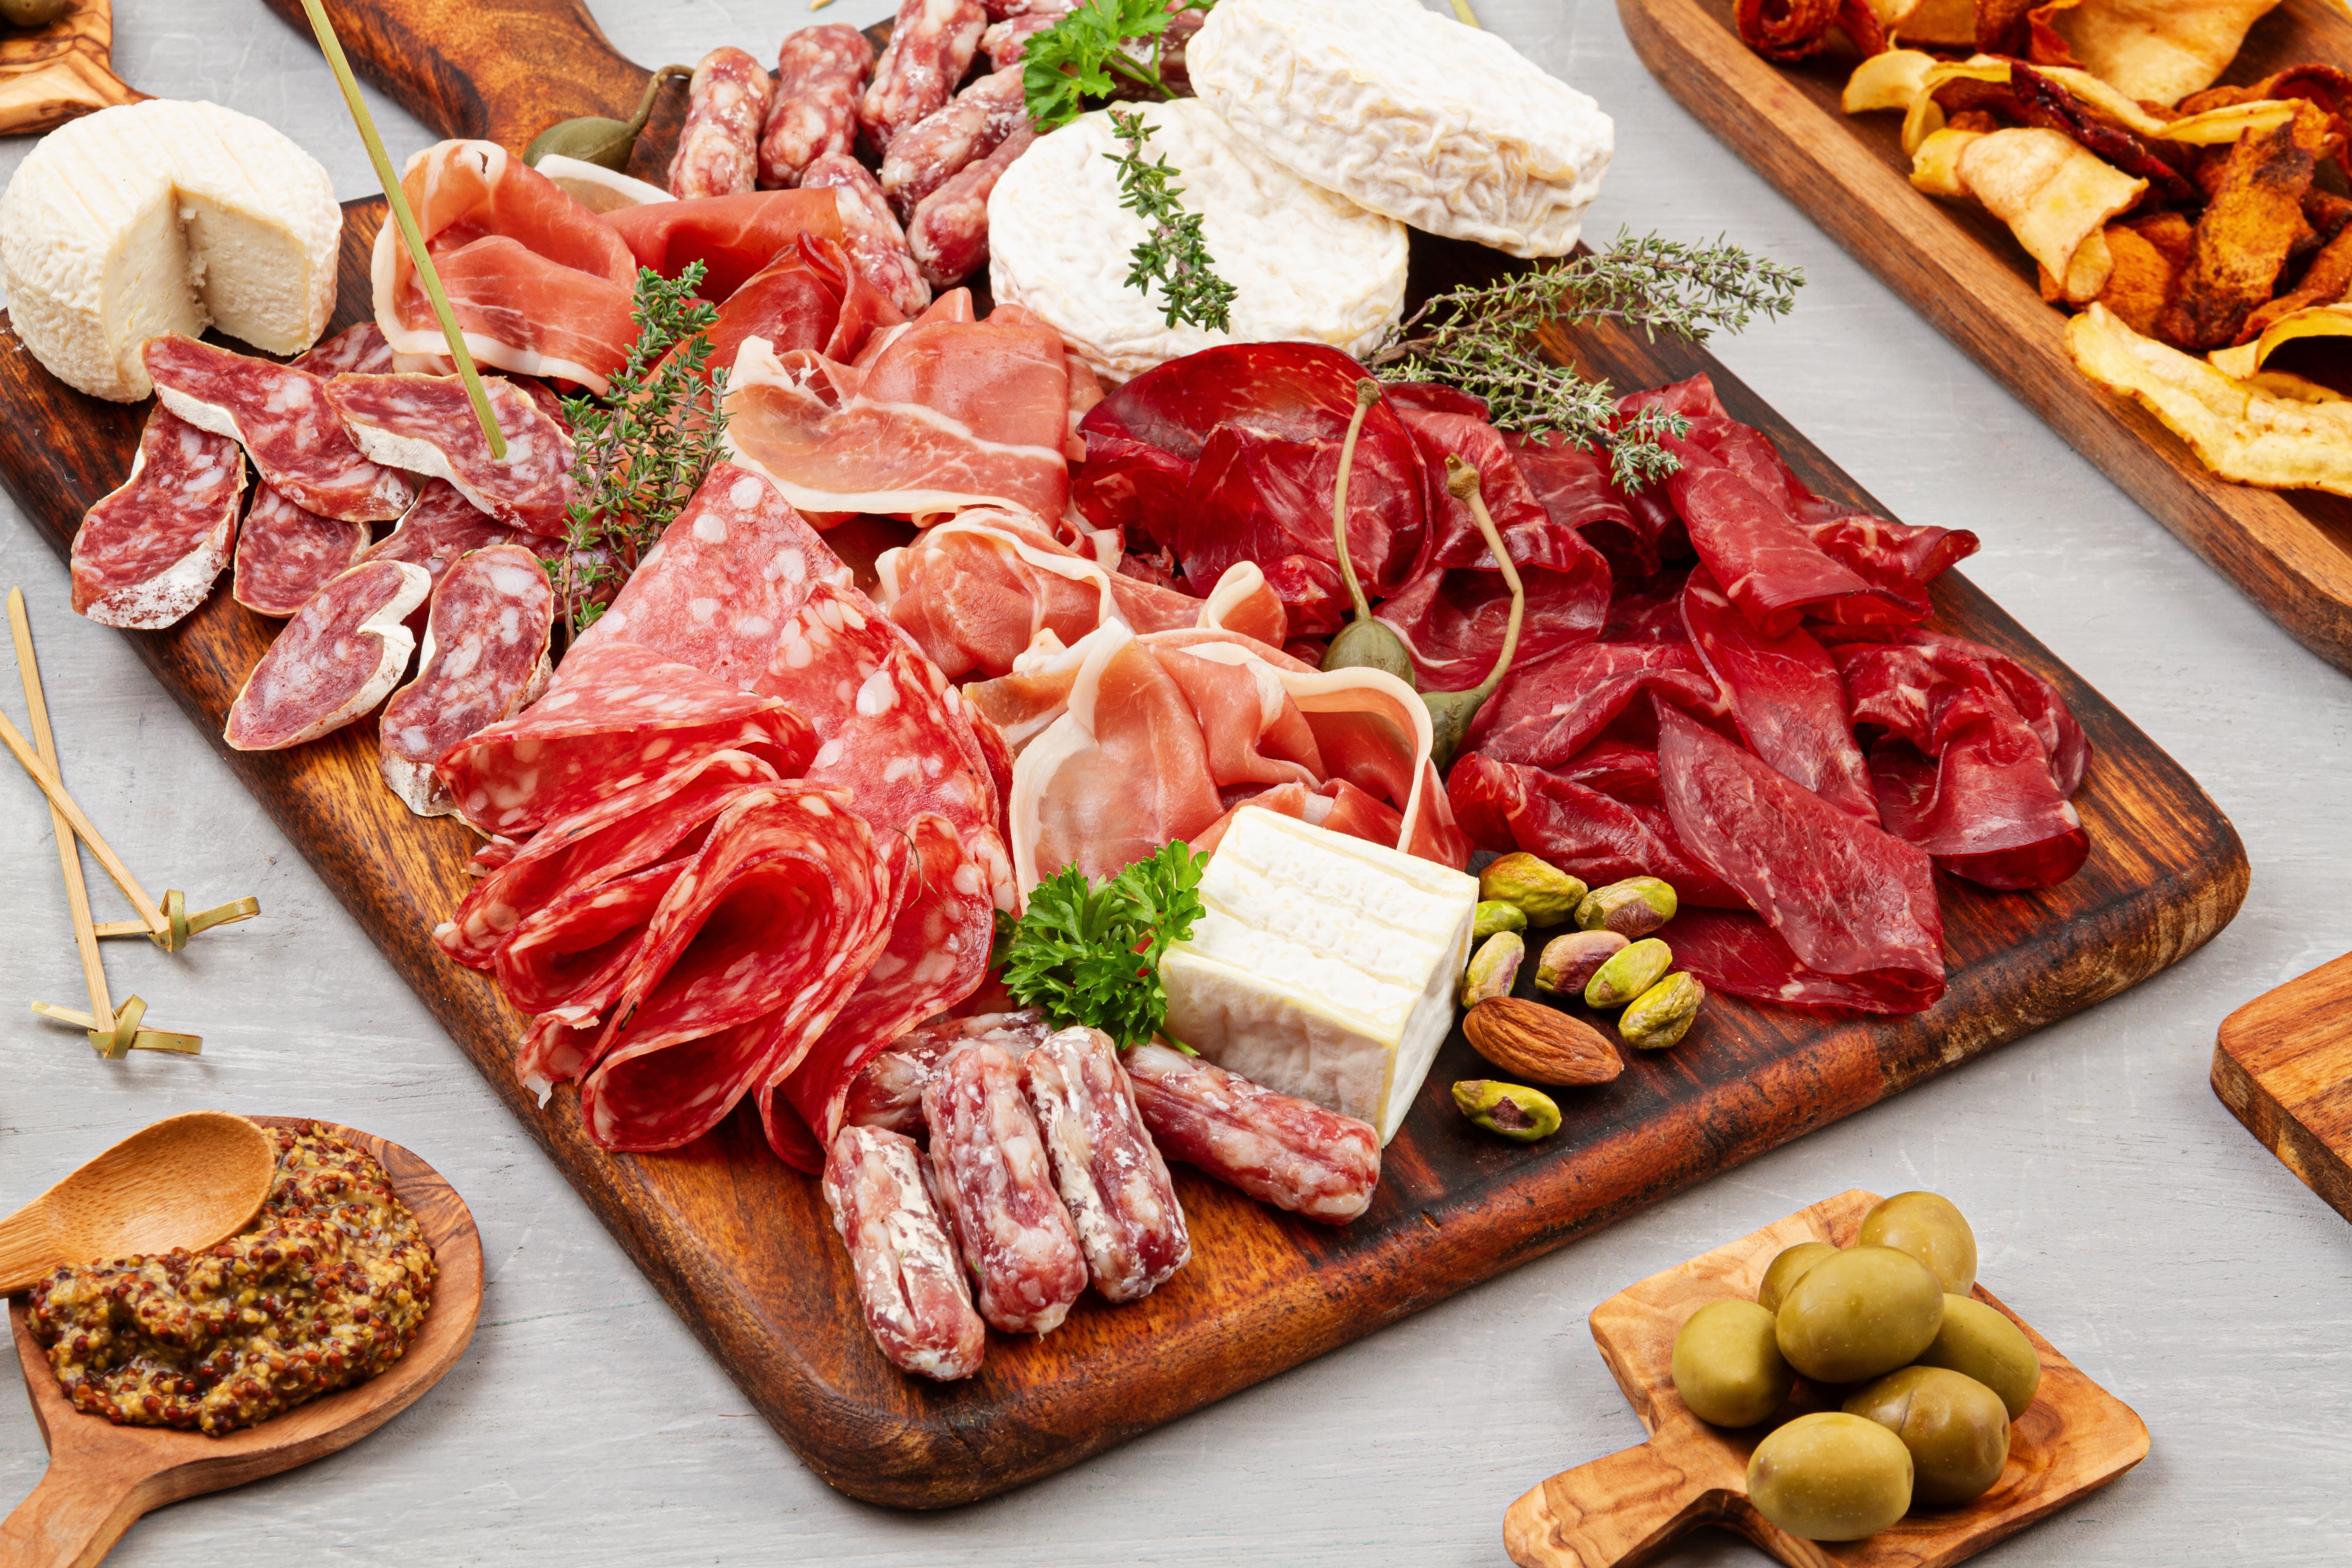 An angled overhead photo of a charcuterie board with various meats and cheeses.